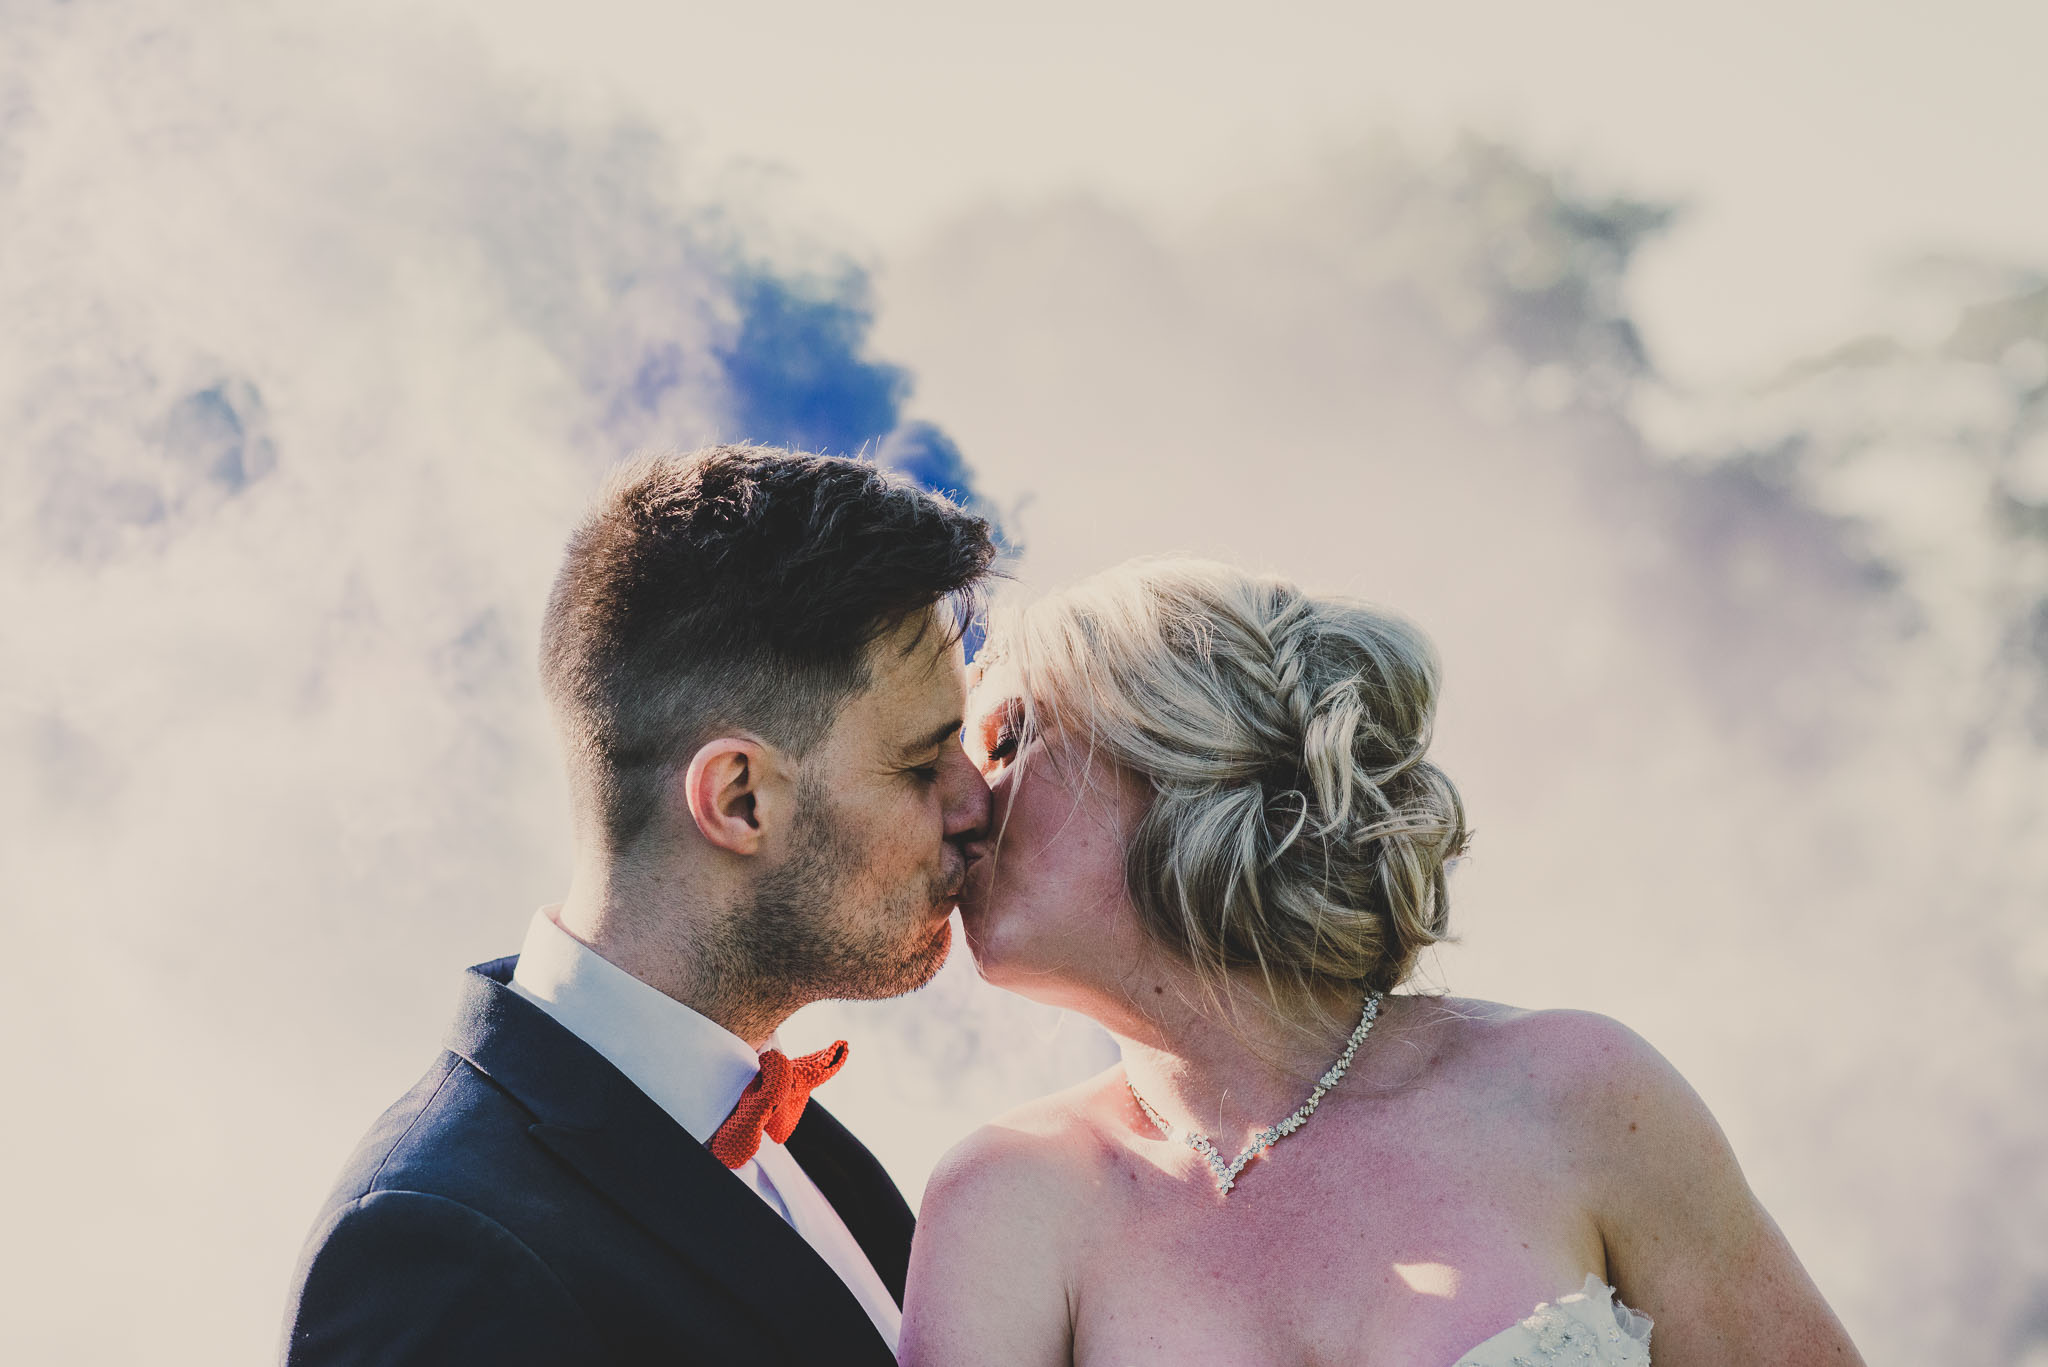 WEDDING: WEDFEST - a festival wedding in Styal Lodge complete with stilt walkers and fire breathers